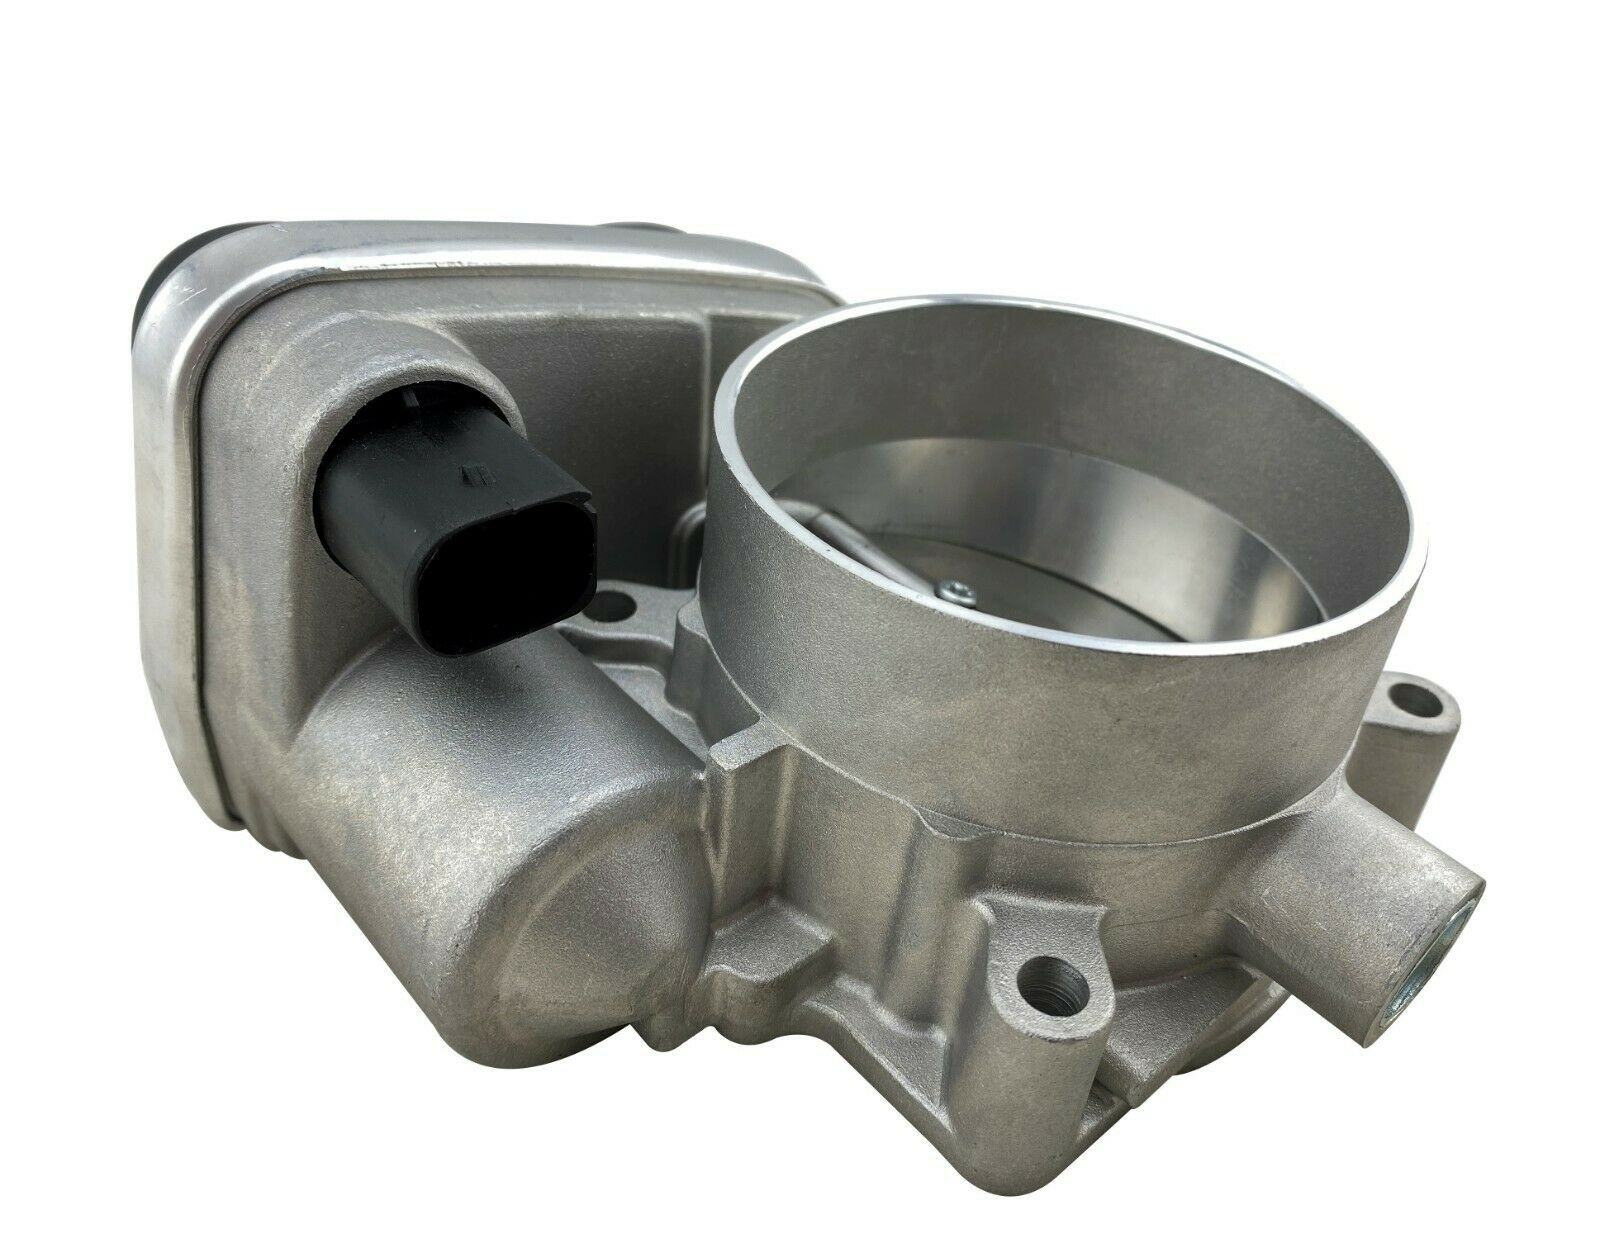 Throttle Body for 2005-13 300 Cherokee Charger Challenger Magnum 5.7L 6.1L 6.4L